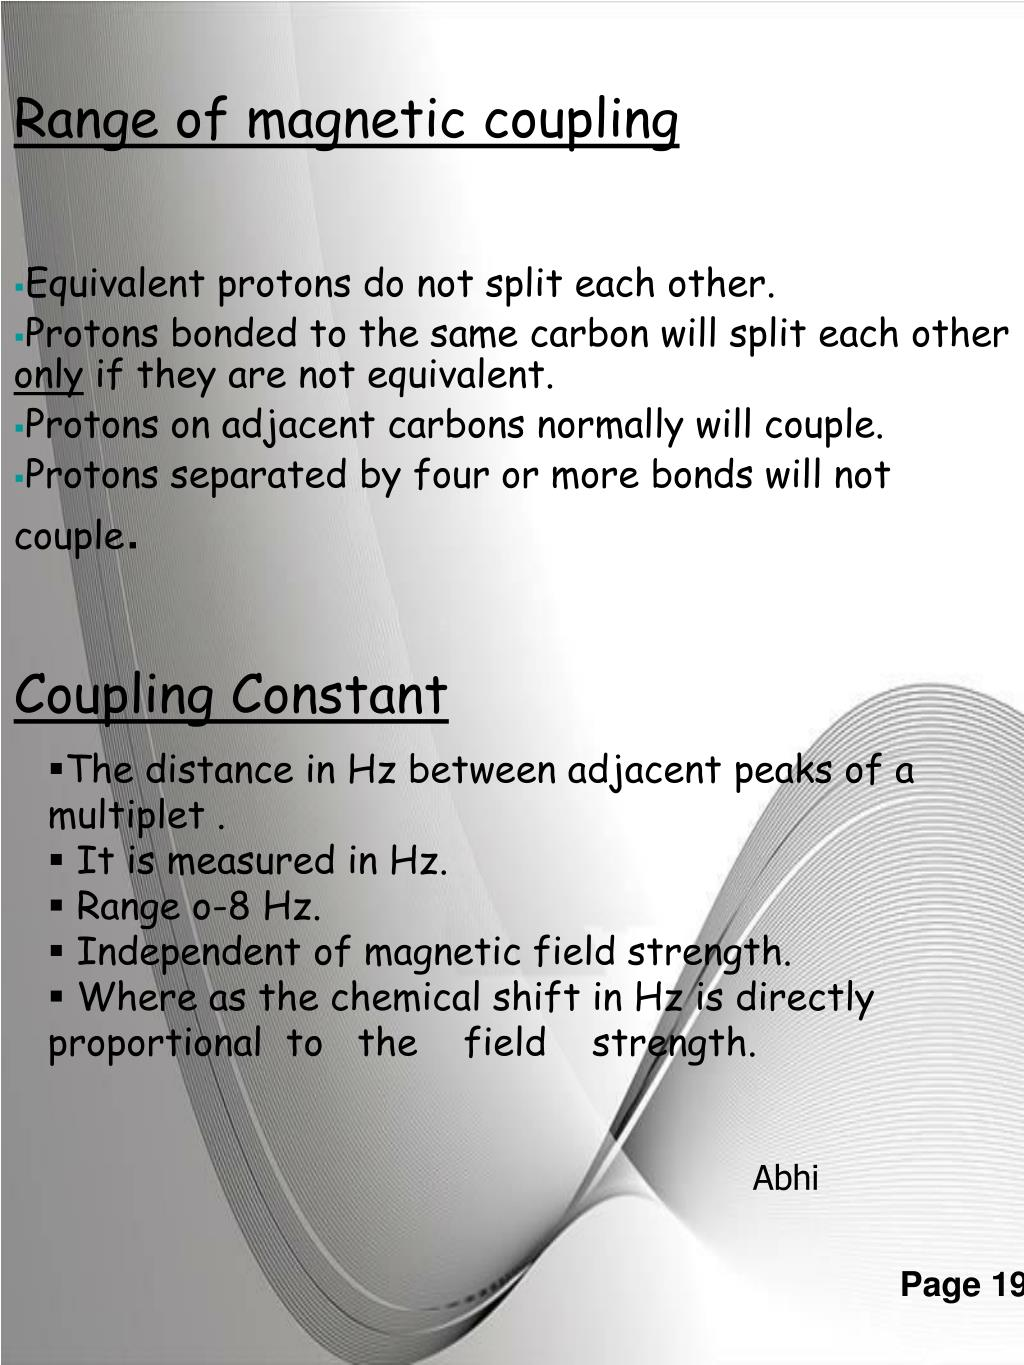 Equivalent protons do not split each other.